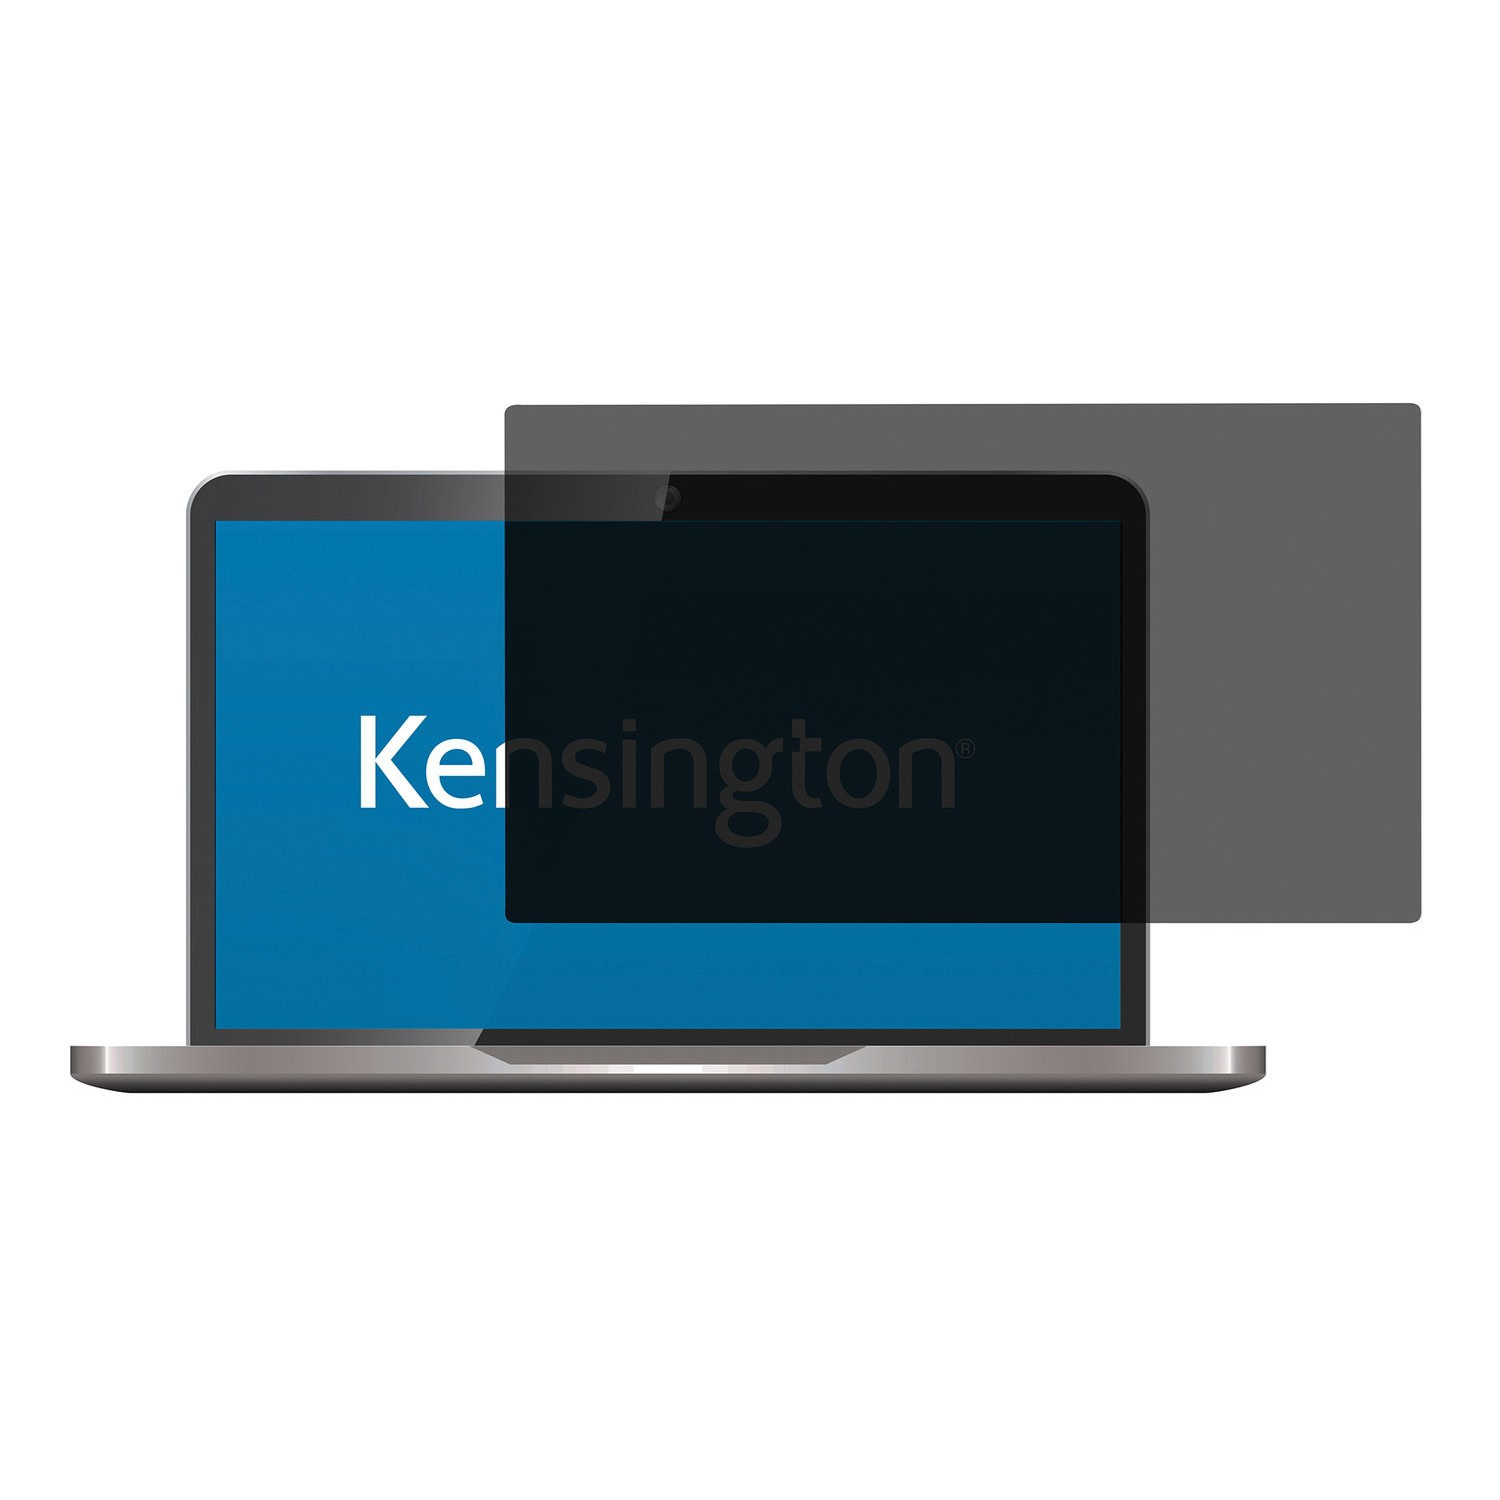 "Kensington privacy filter 2 way removable 35.8cm 14.1"" Wide"